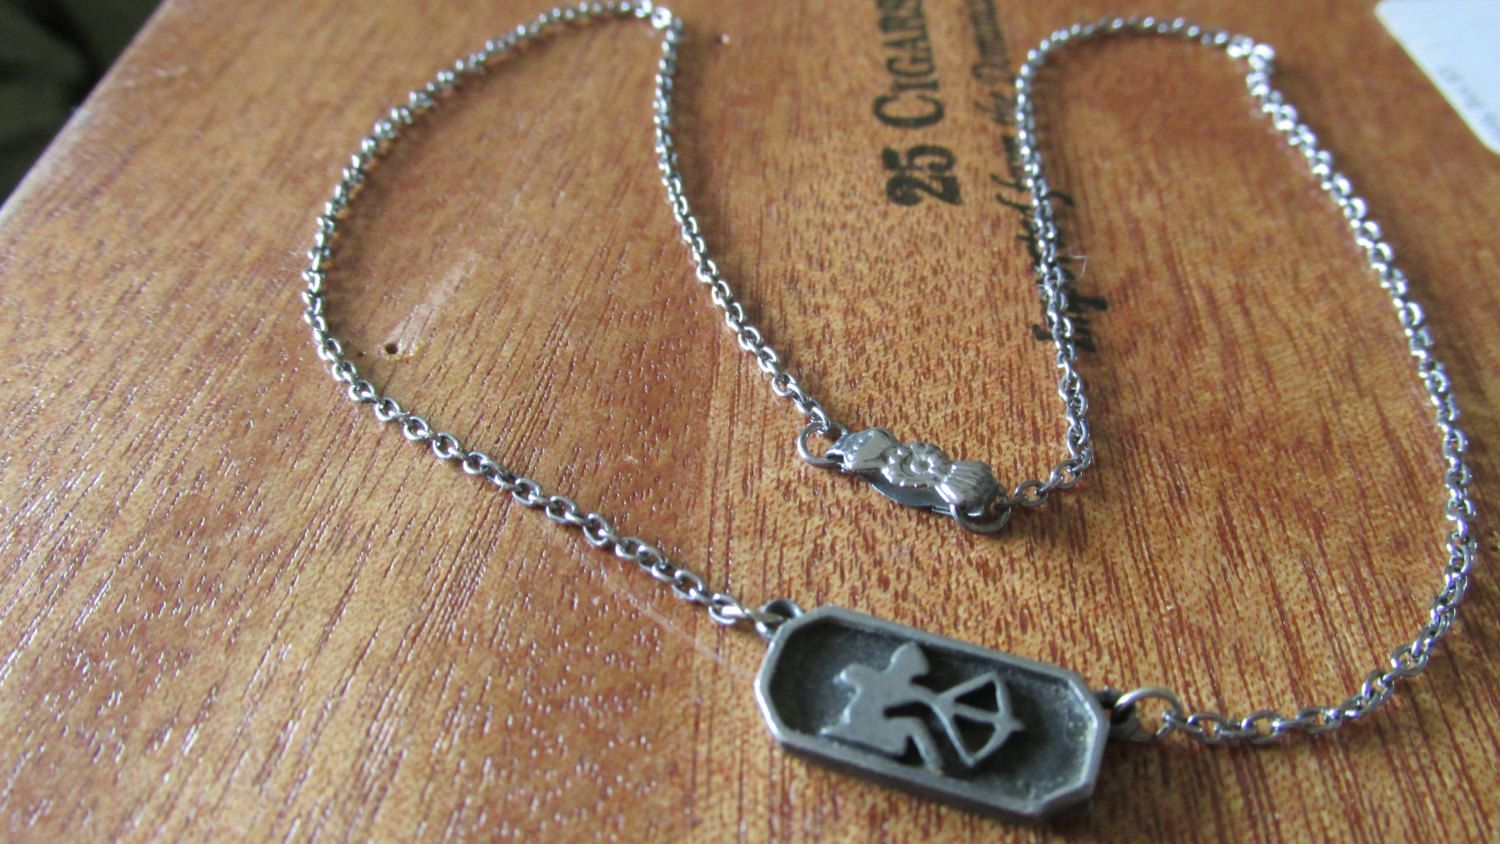 "Vintage PEWTER and Silver Tone SAGITTARIUS NECKLACE 17"" Chain 1950's  Dated Clasp Collectible Uni Sex Zodiac Horoscope Archer Design by GrammiesCupboard on Etsy"